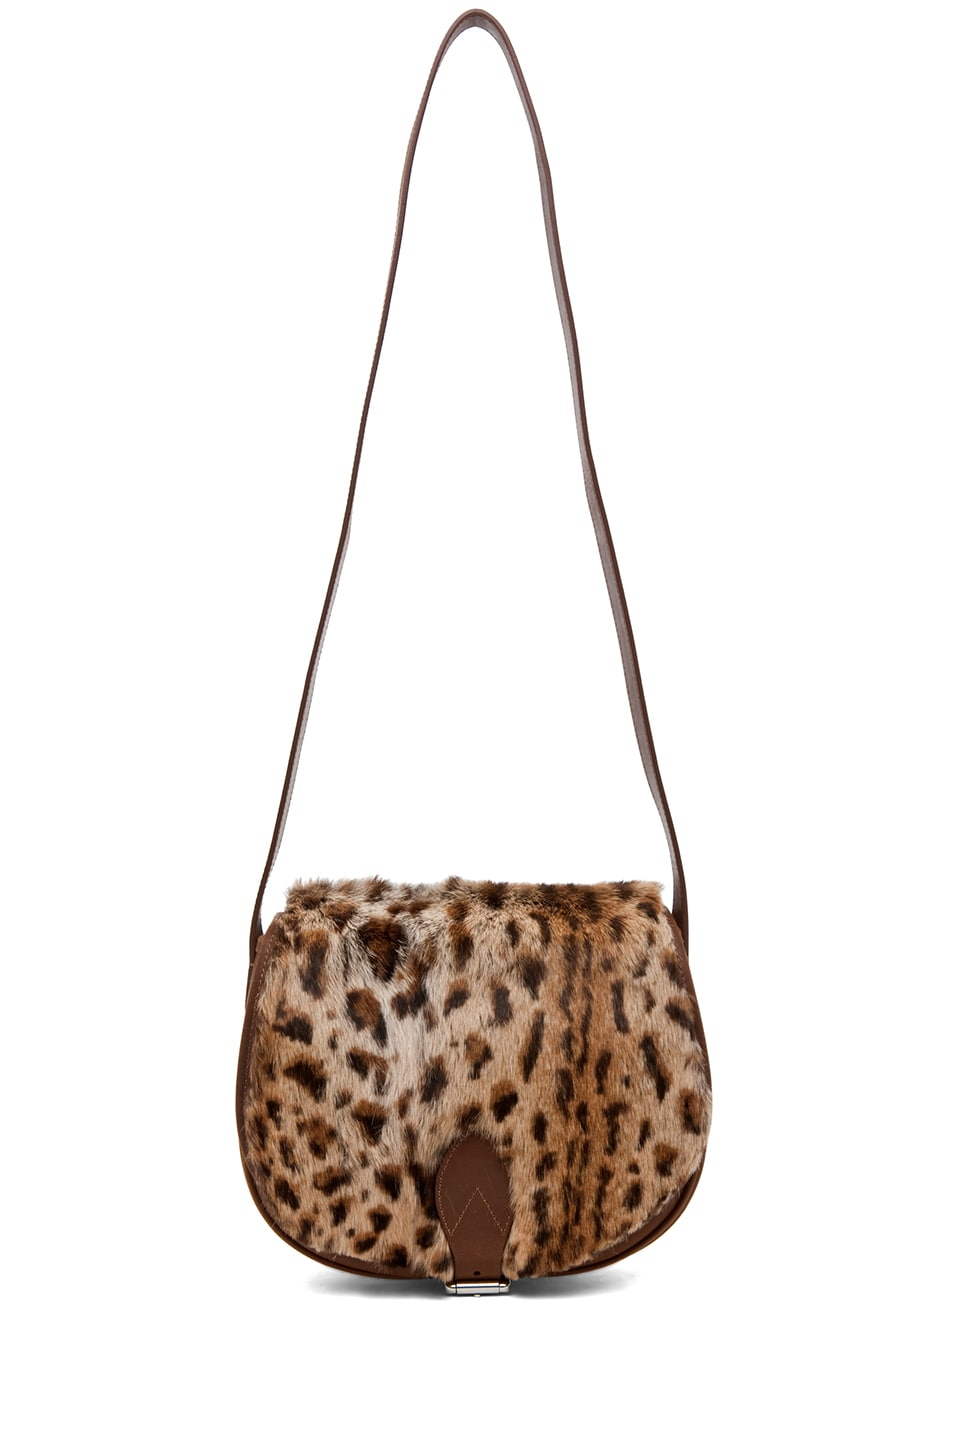 Image 6 of A.P.C. Sac Besace Leopard Bag in Caramel